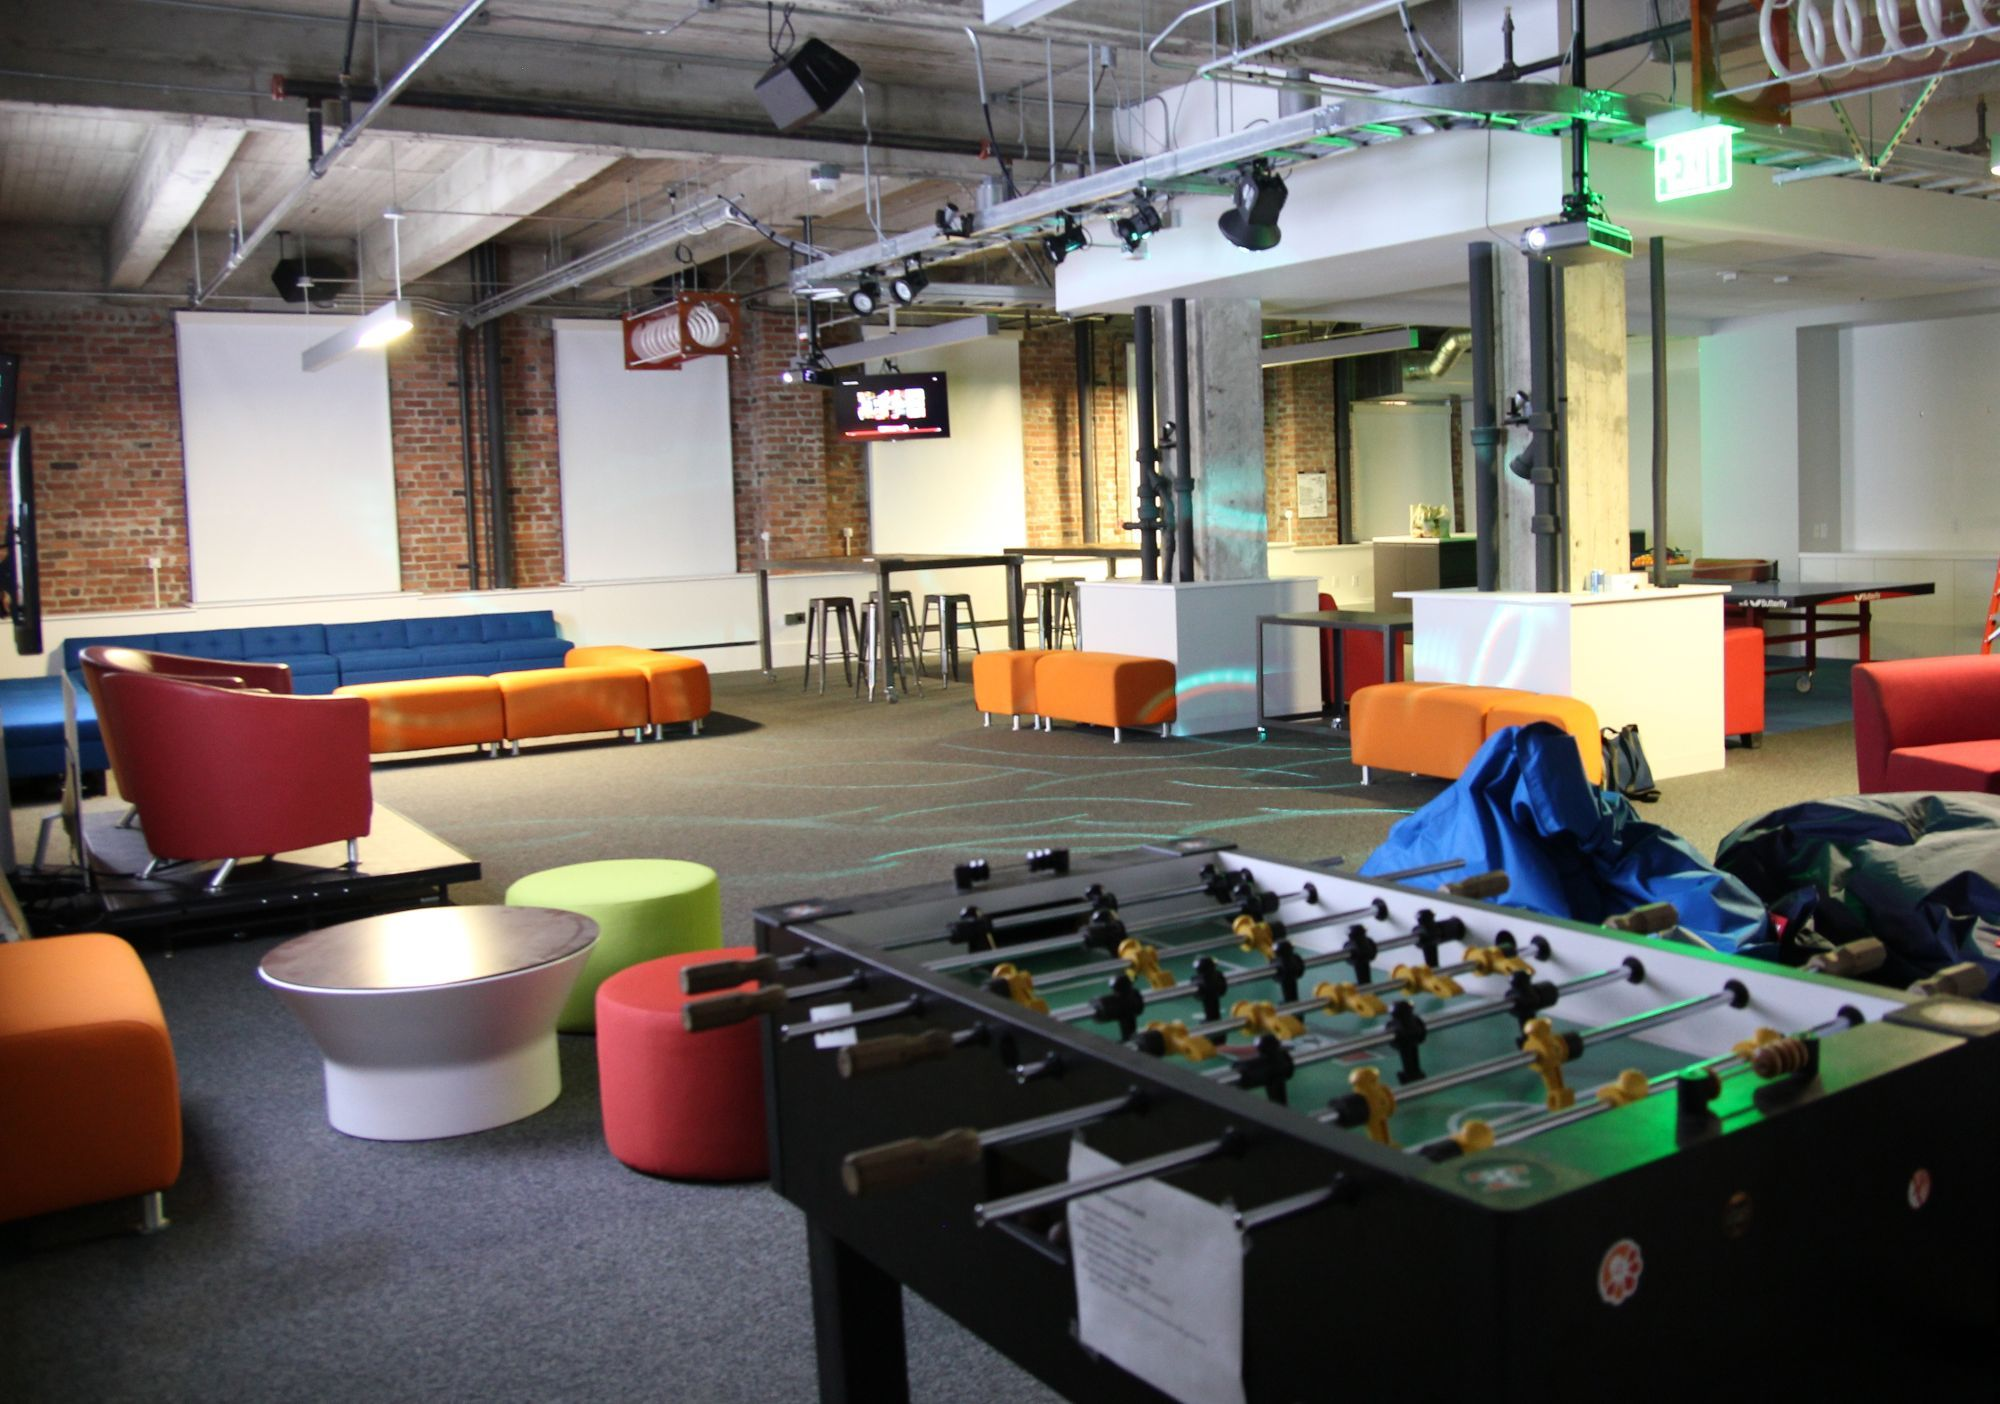 google office game room - Google Search | UCSD Projects ...